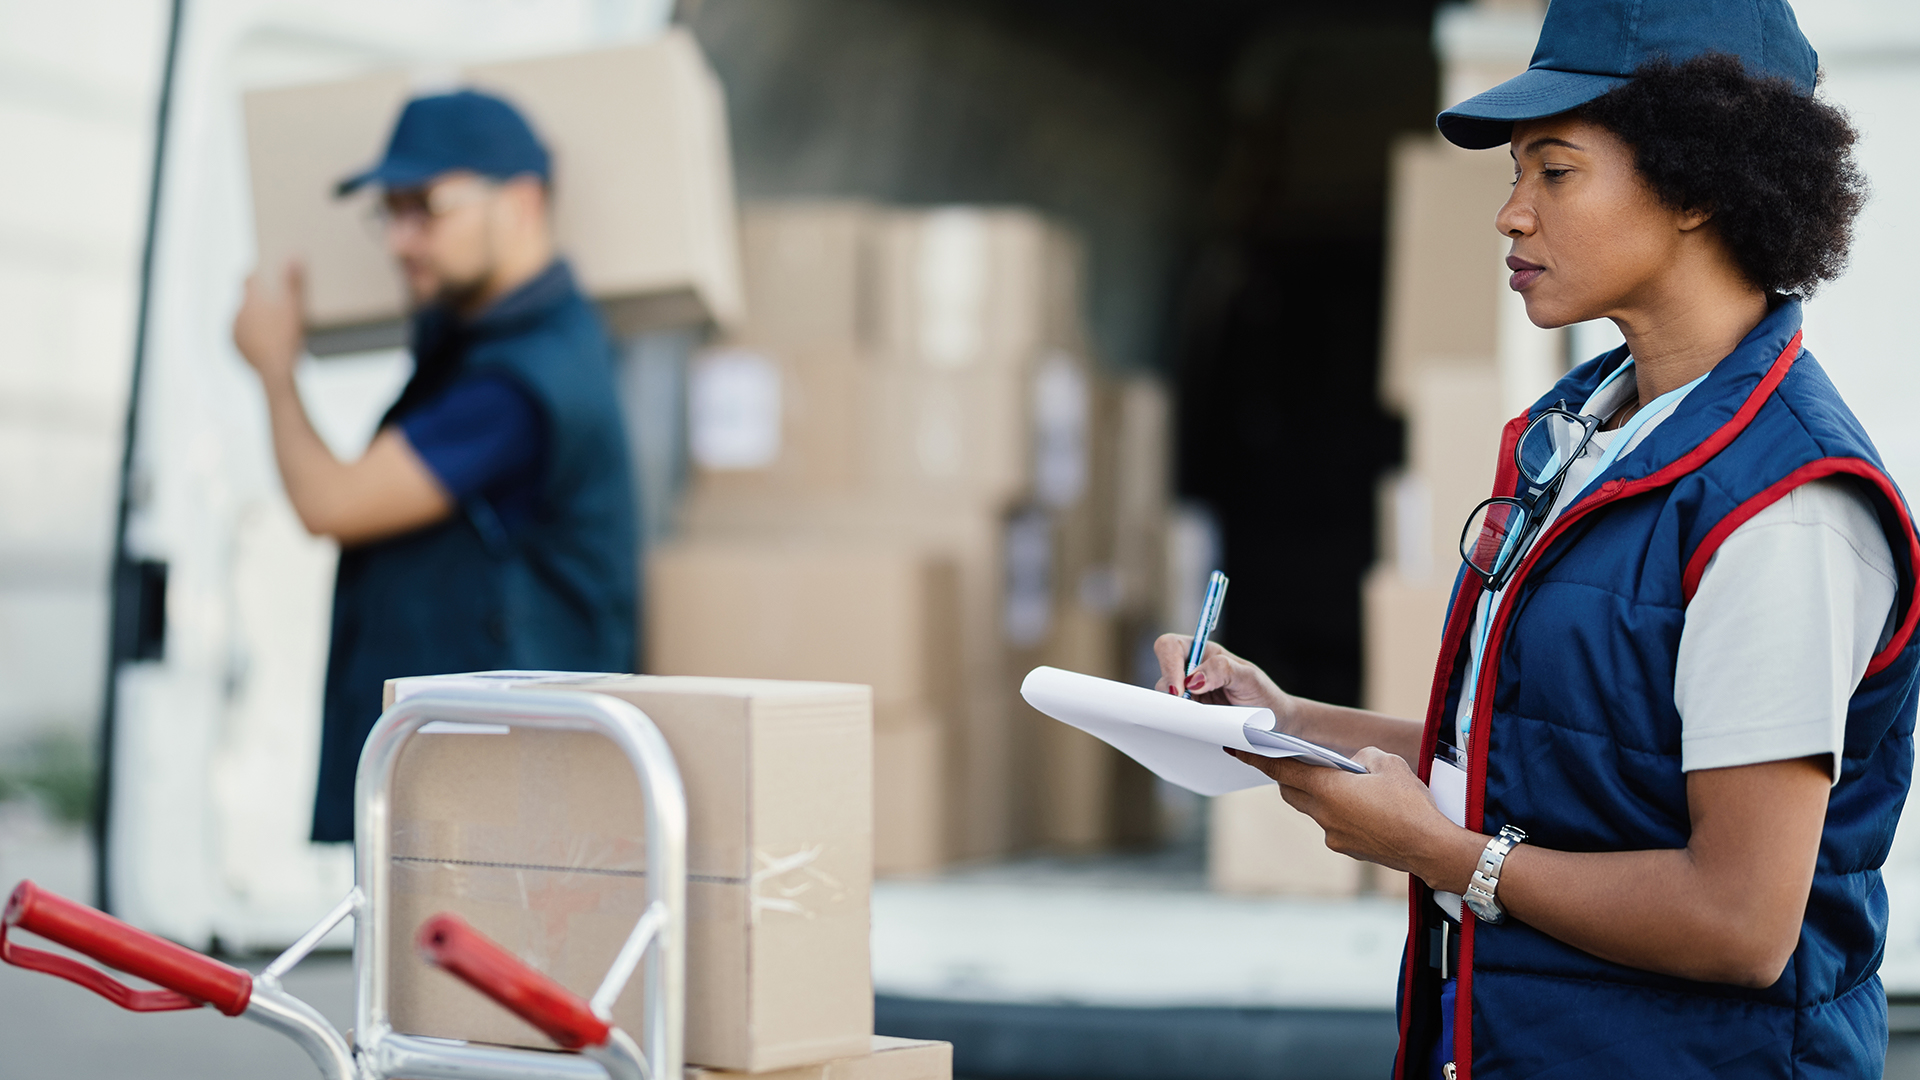 Logistics workers busy in warehouse